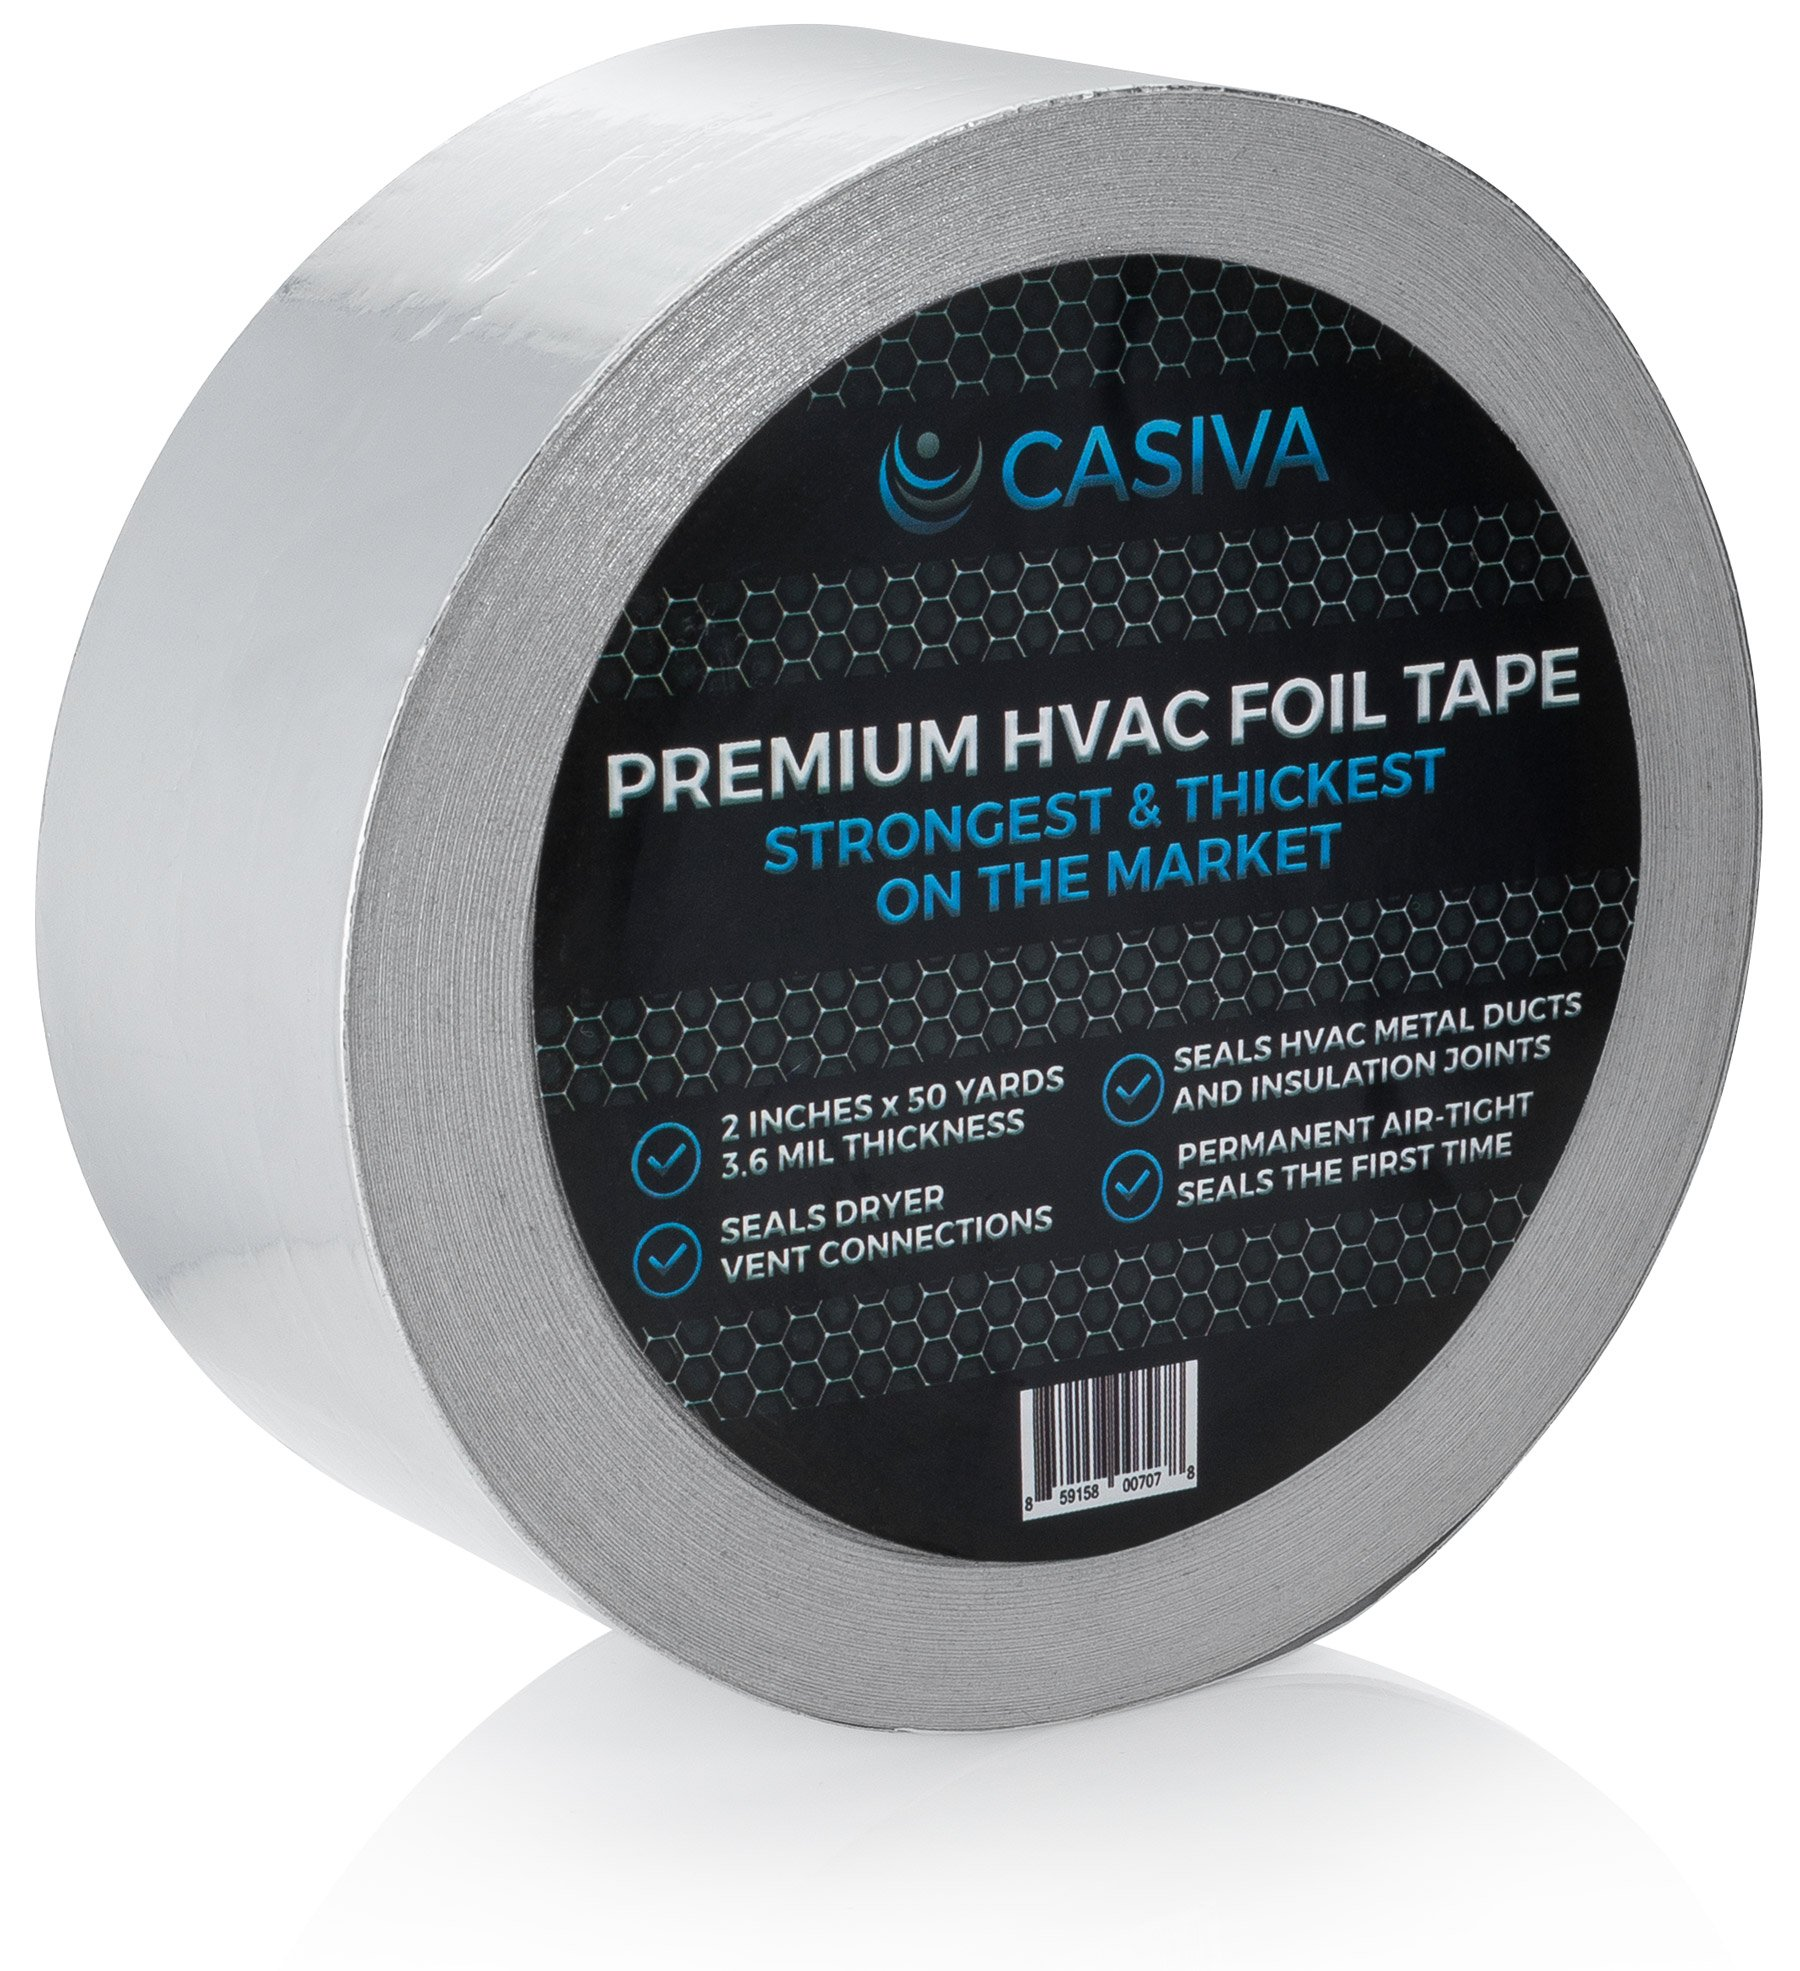 Professional HVAC Tape & Premium Aluminum Foil Tape - Strongest & Thickest - 3.6mil Thickness, 50 Yards, 2'' Width - For Duct Insulation & Metal Sealant